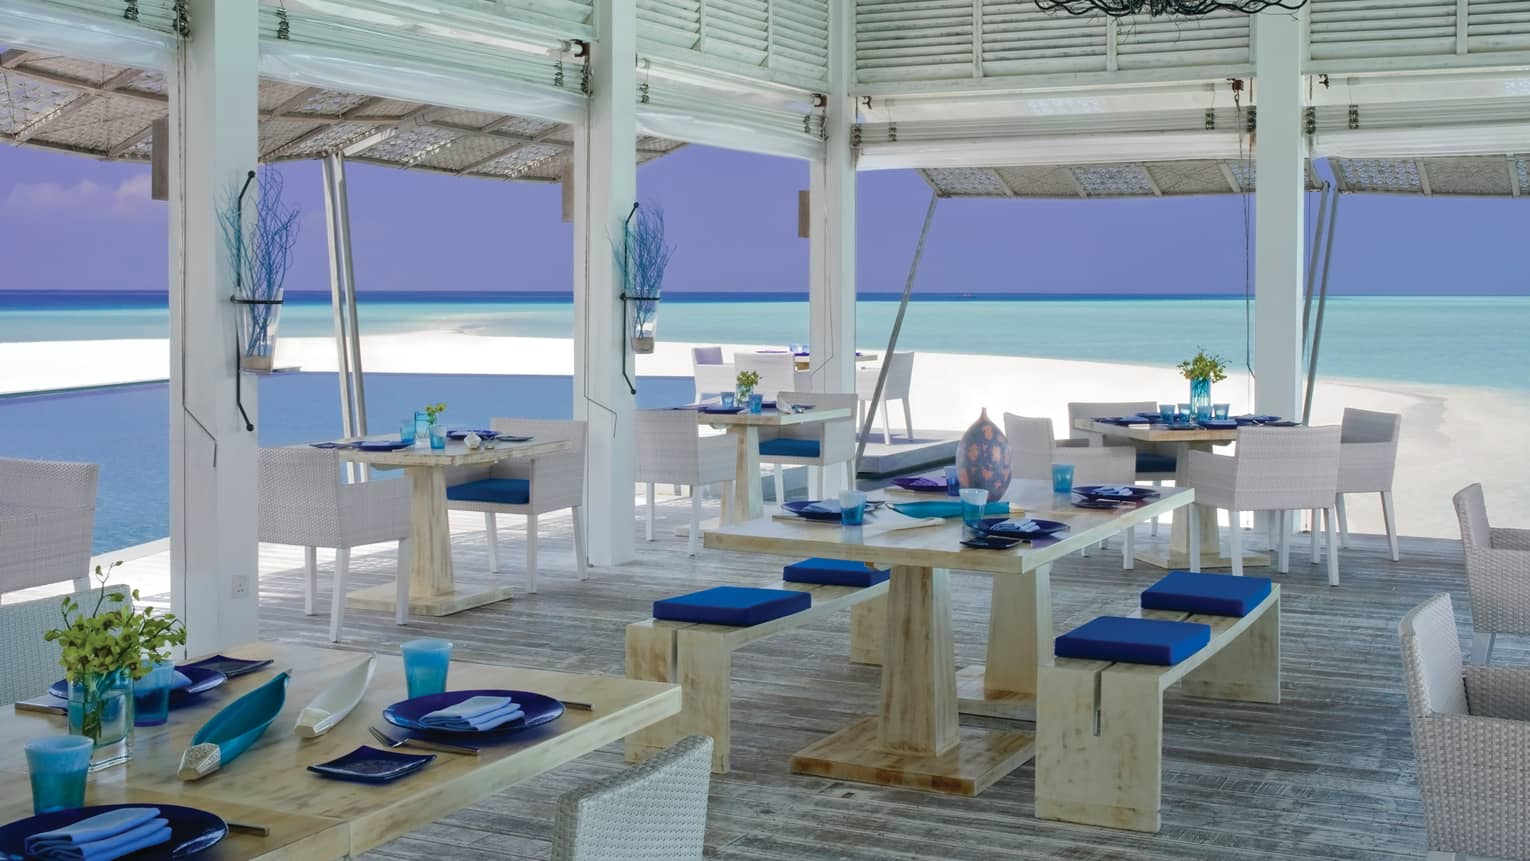 Blu patio, light wood tables, white wicker chairs, open-air walls with beach and ocean views